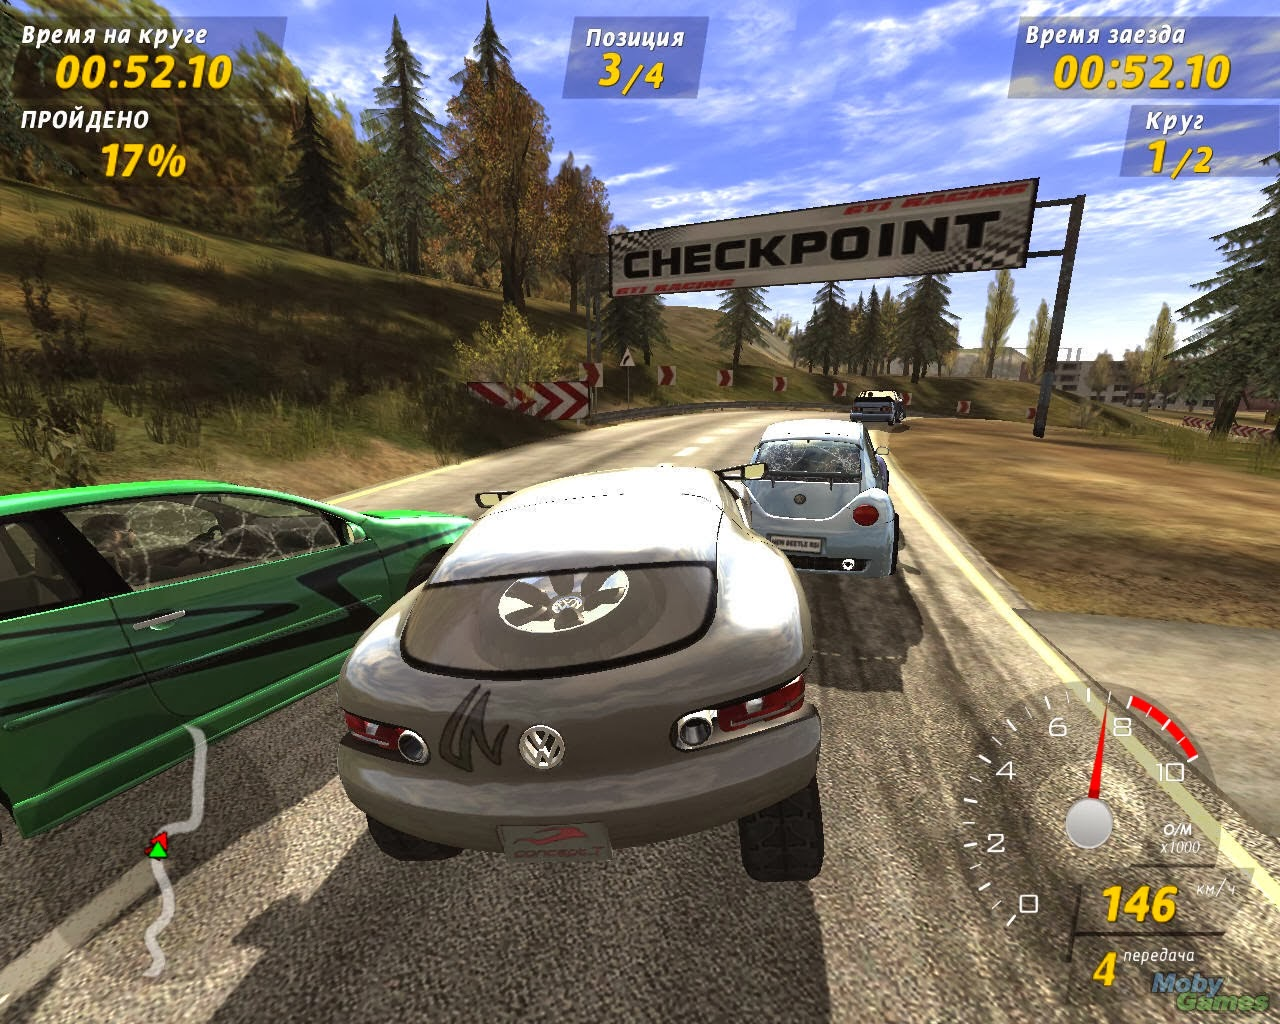 300mb racing games free download